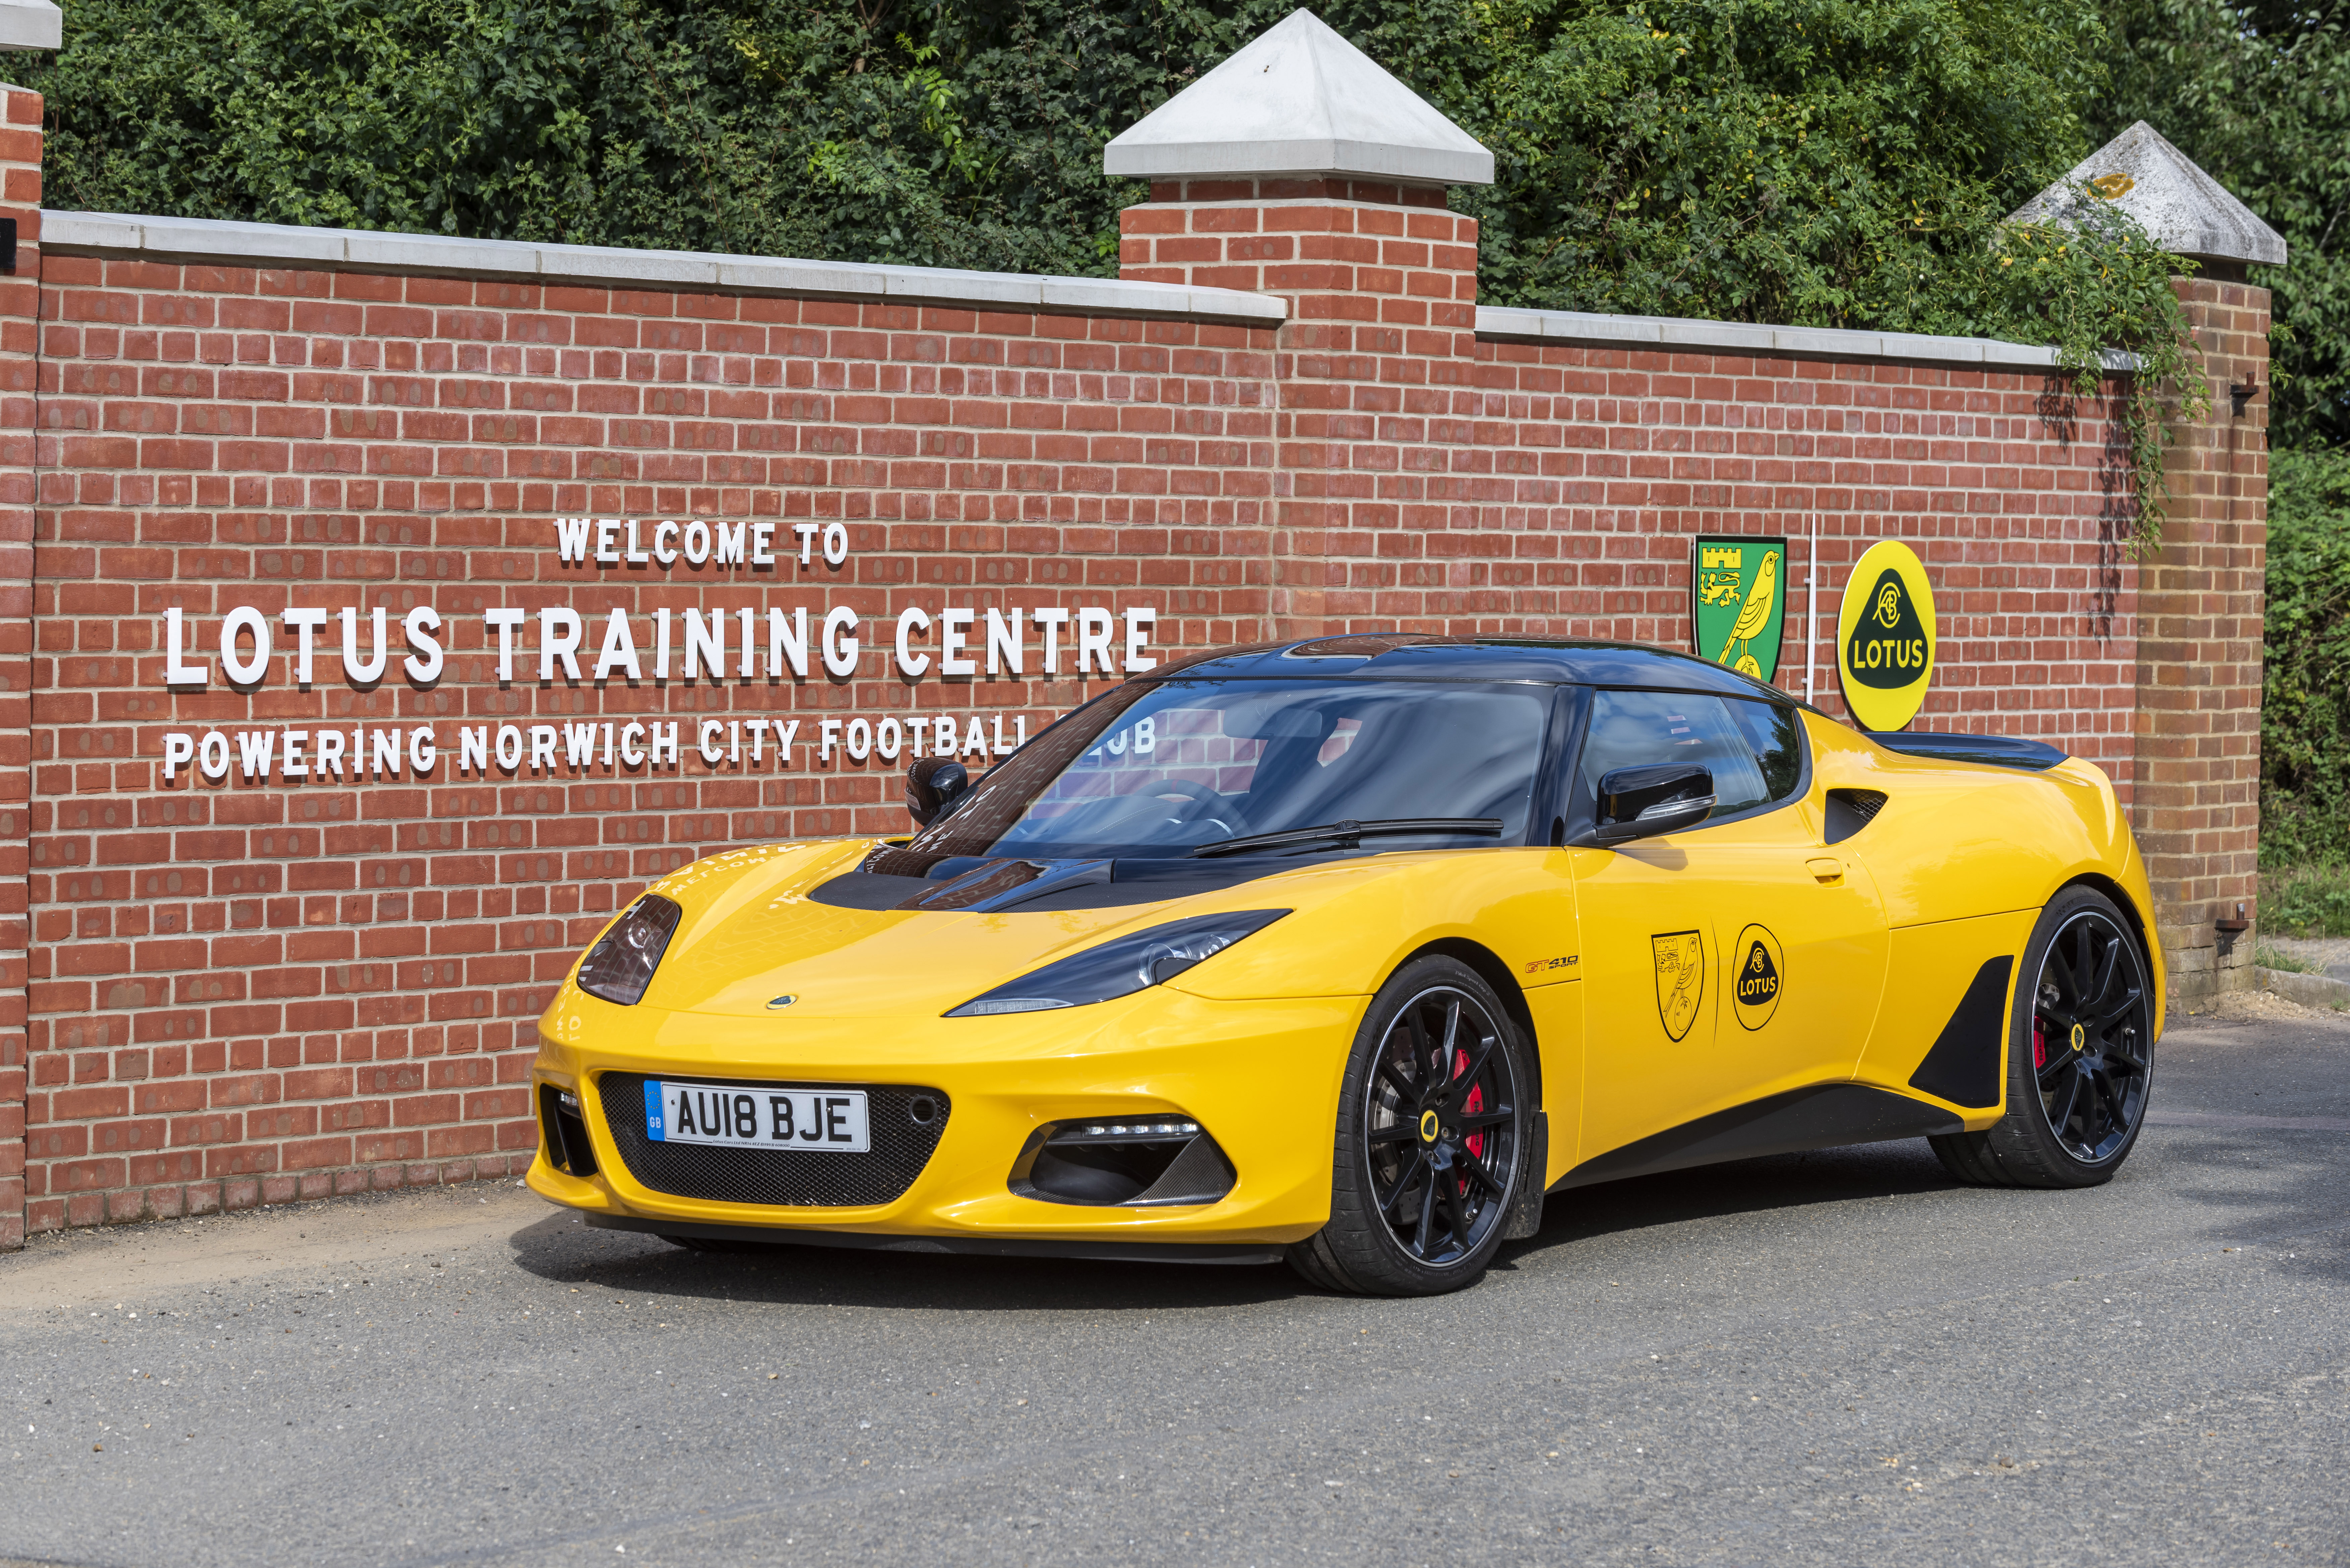 image of a Lotus parked outside the newly named training centre in conjunction with Lotus reveals rebrand